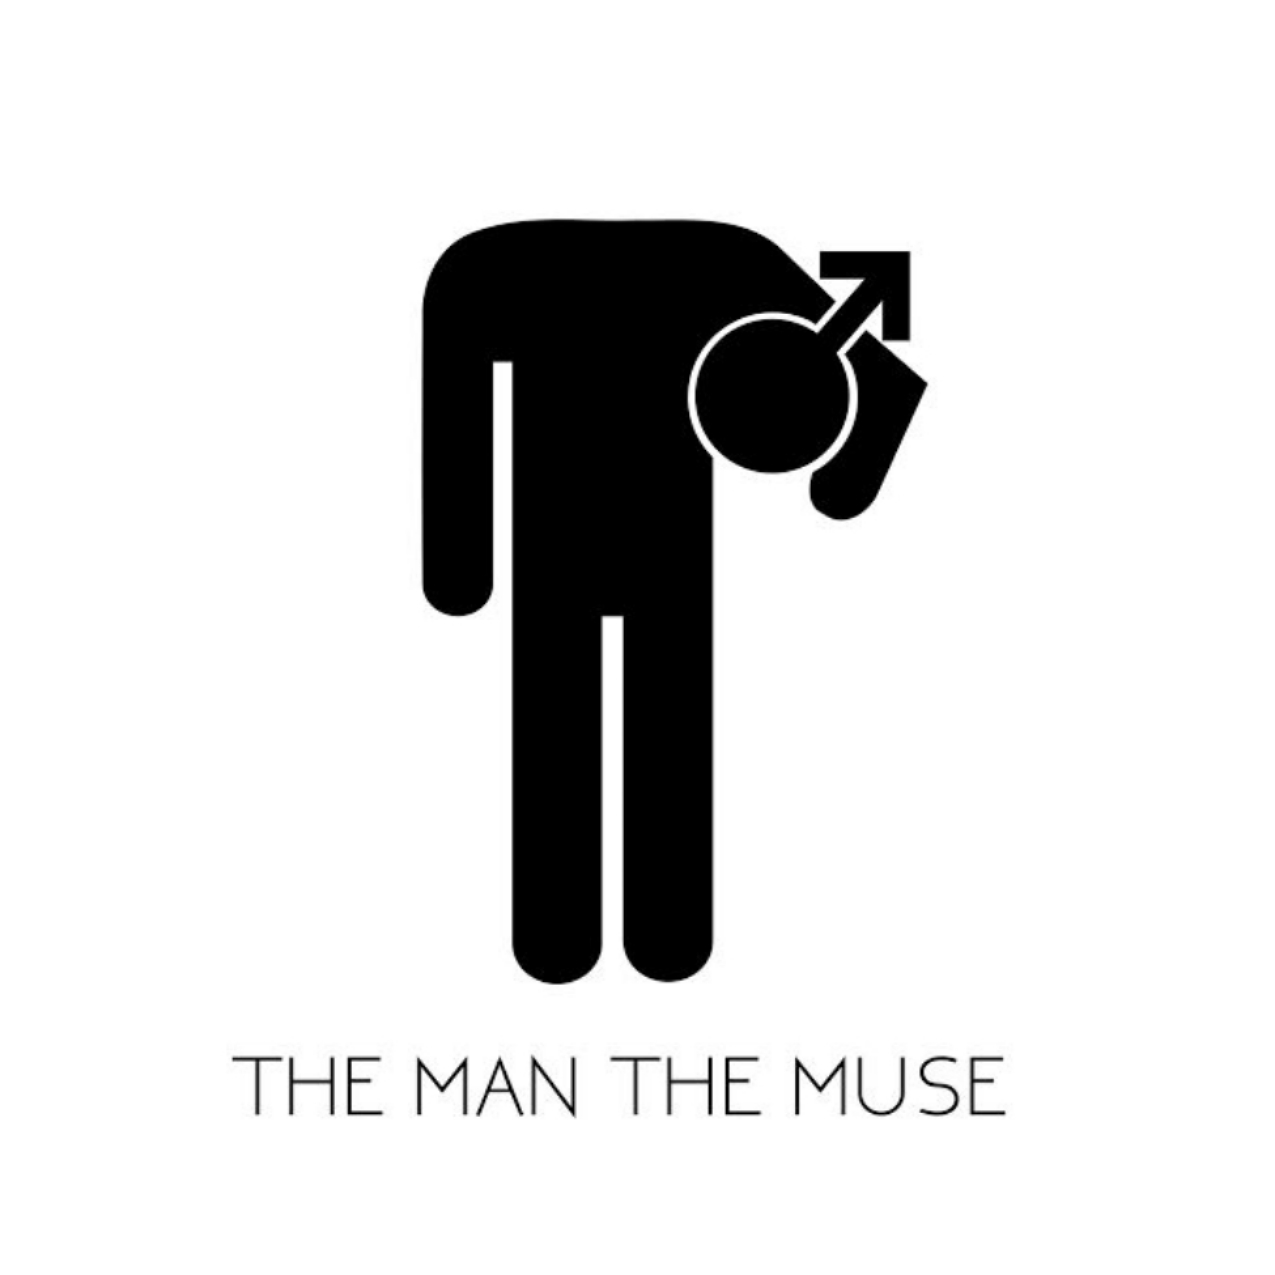 The Man, The Muse